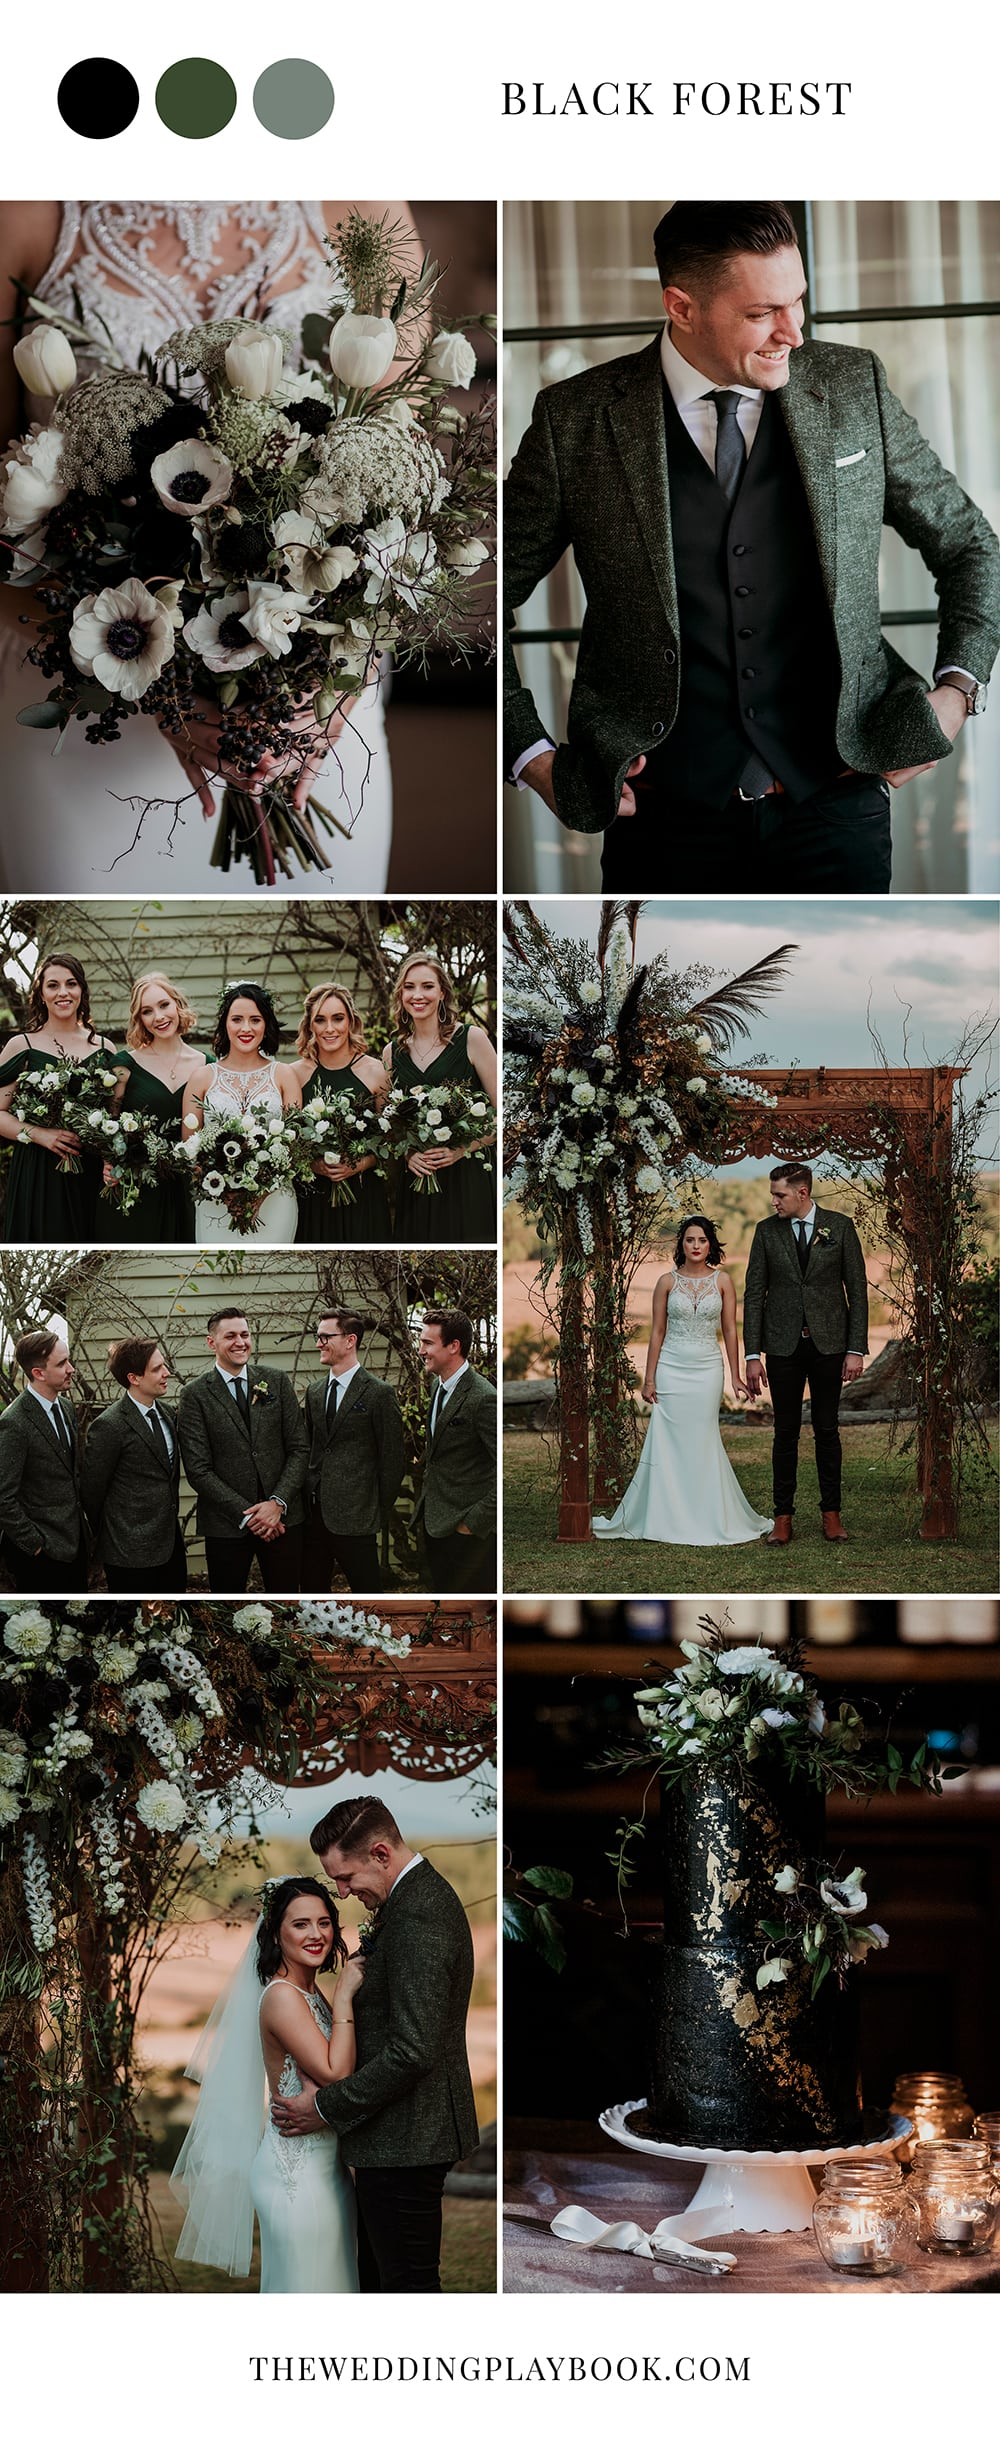 Striking Black, White & Forest Green Wedding Inspiration